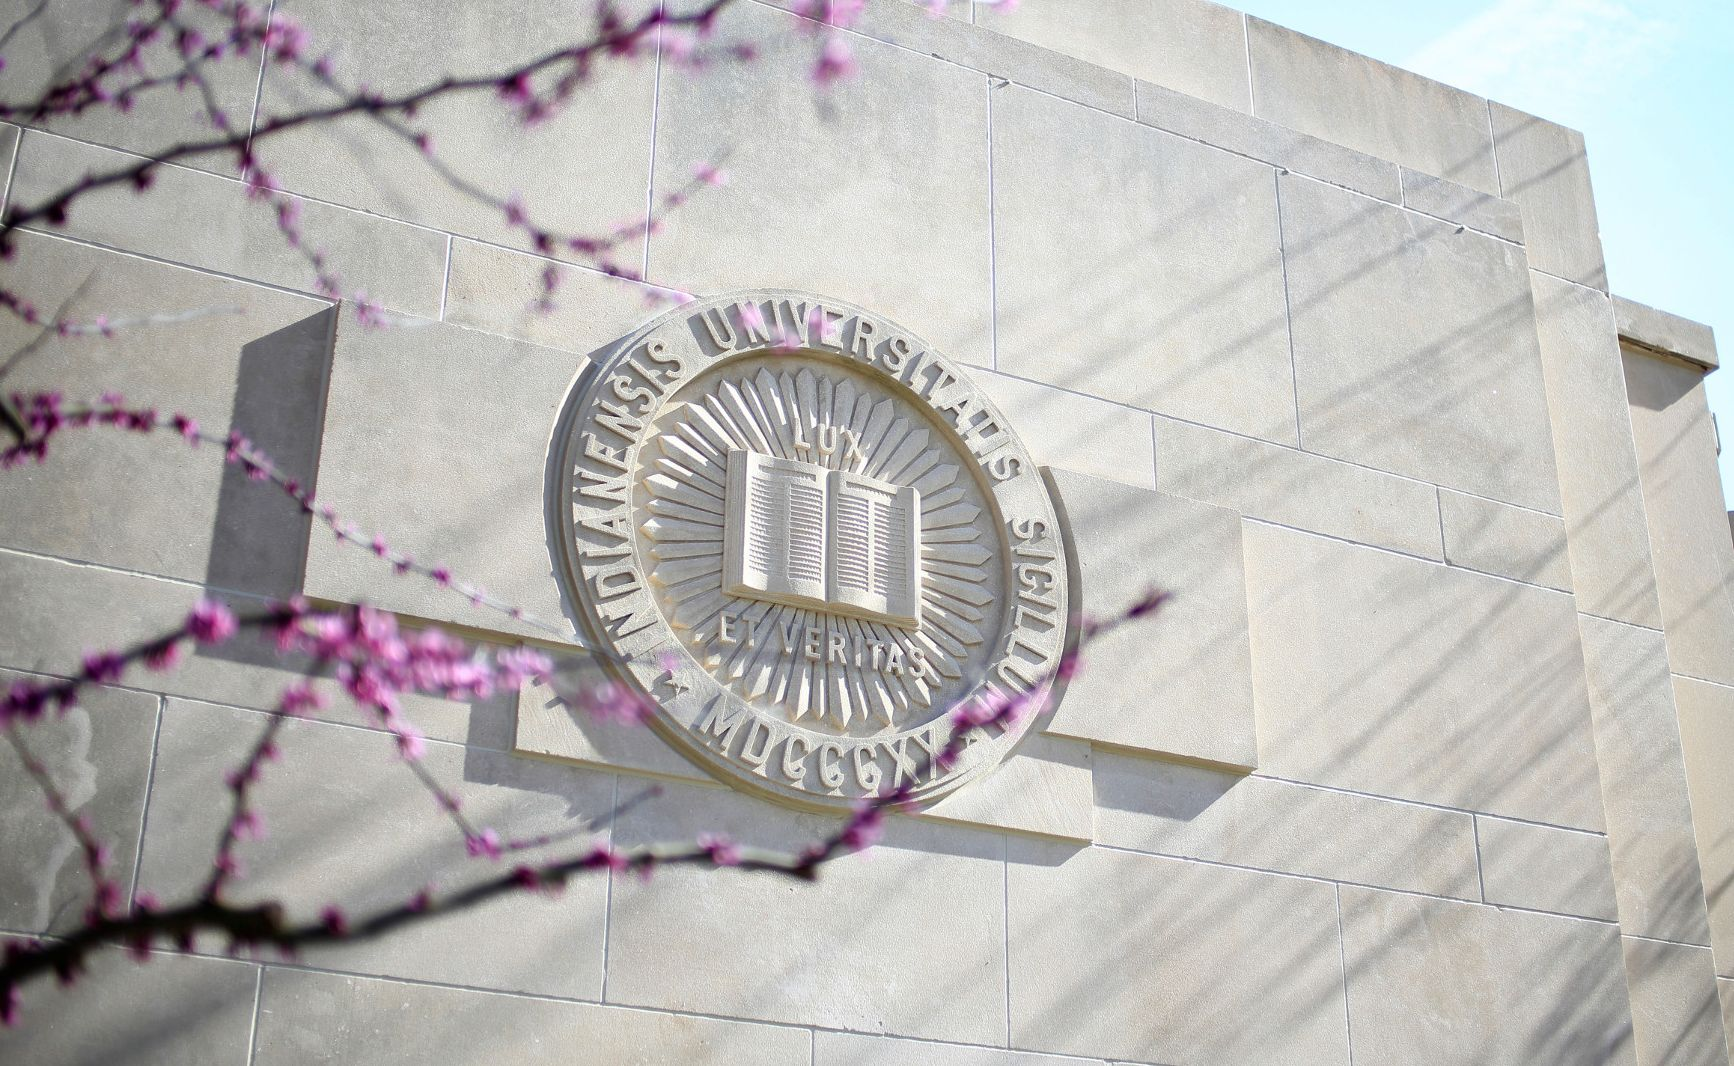 The Indiana University seal is seen carved into a limestone building behind tree blossoms